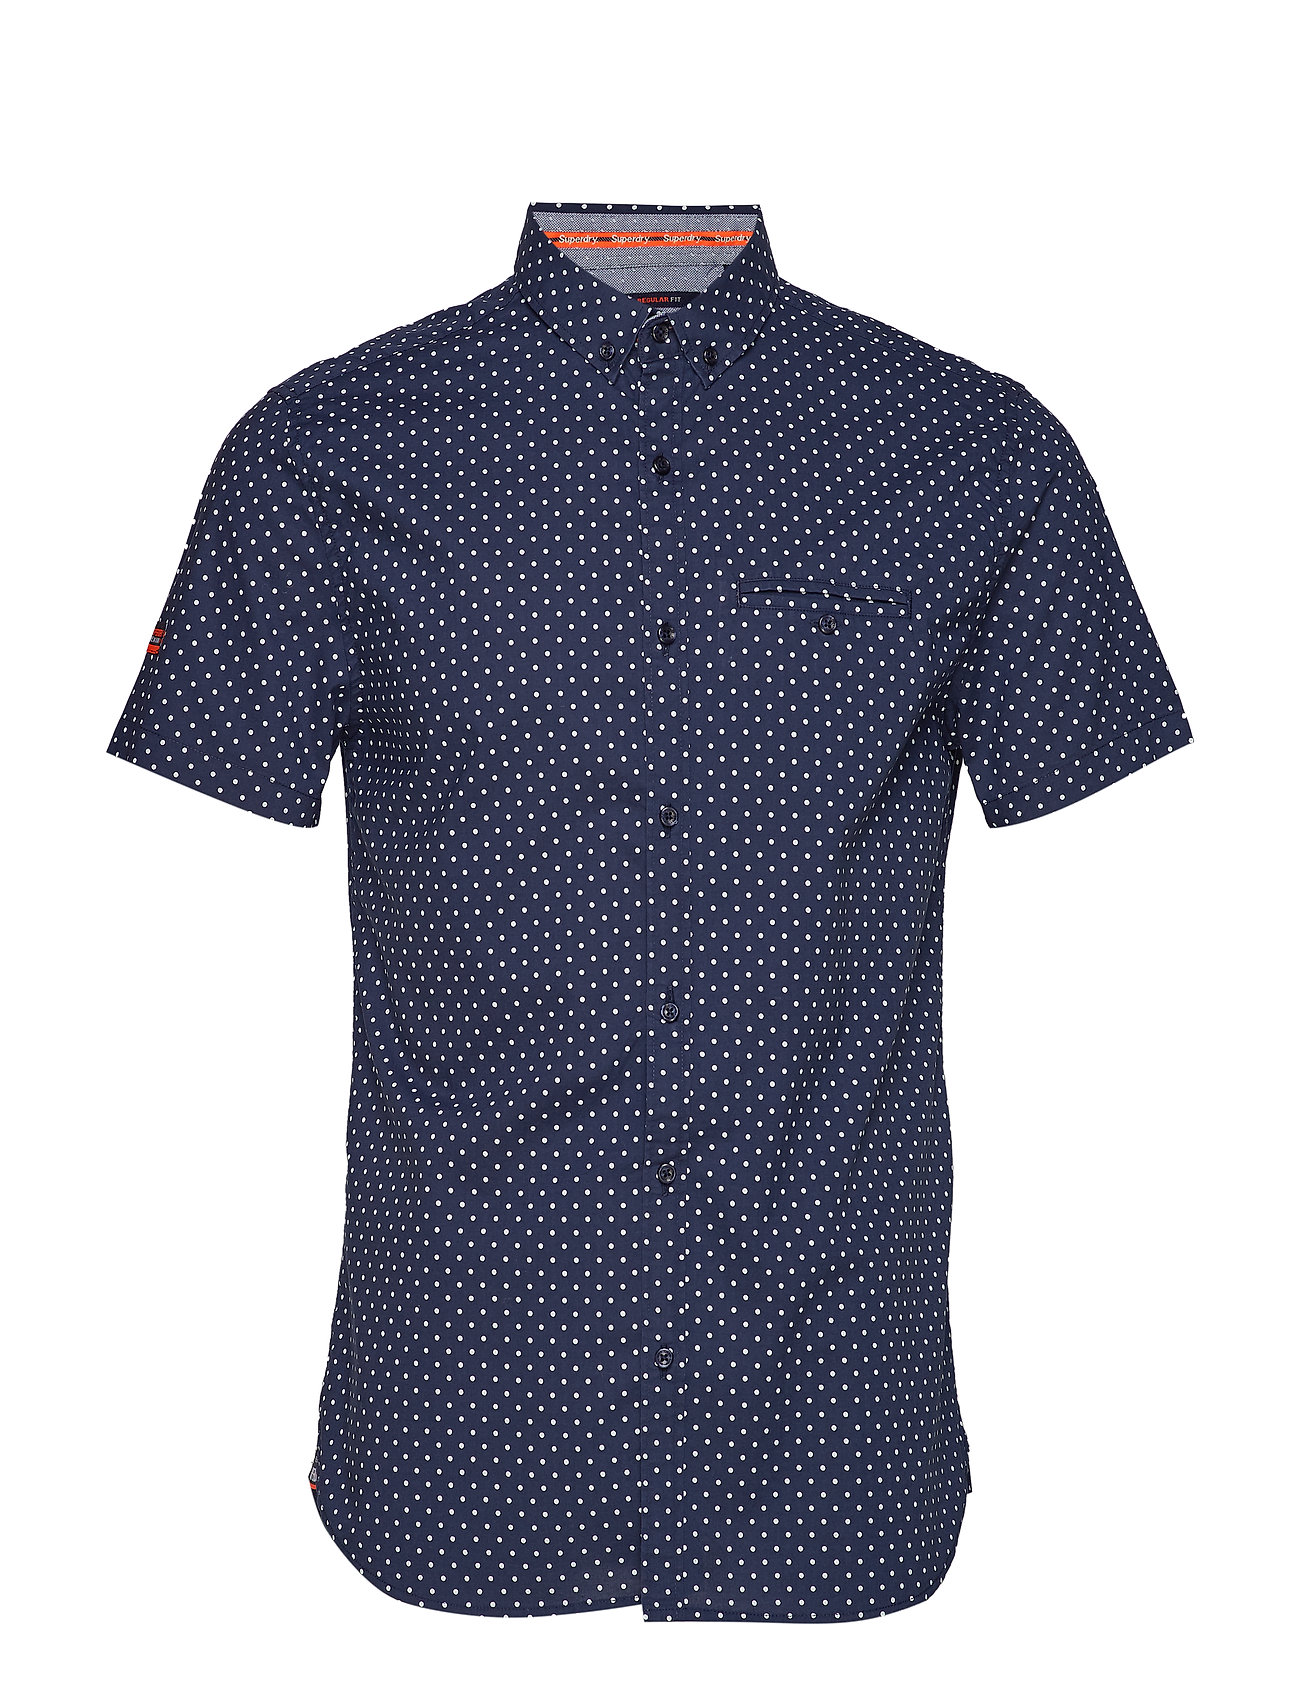 Superdry PREMIUM SHOREDITCH PRINT S/S SHIRT - CLASSIC DOT